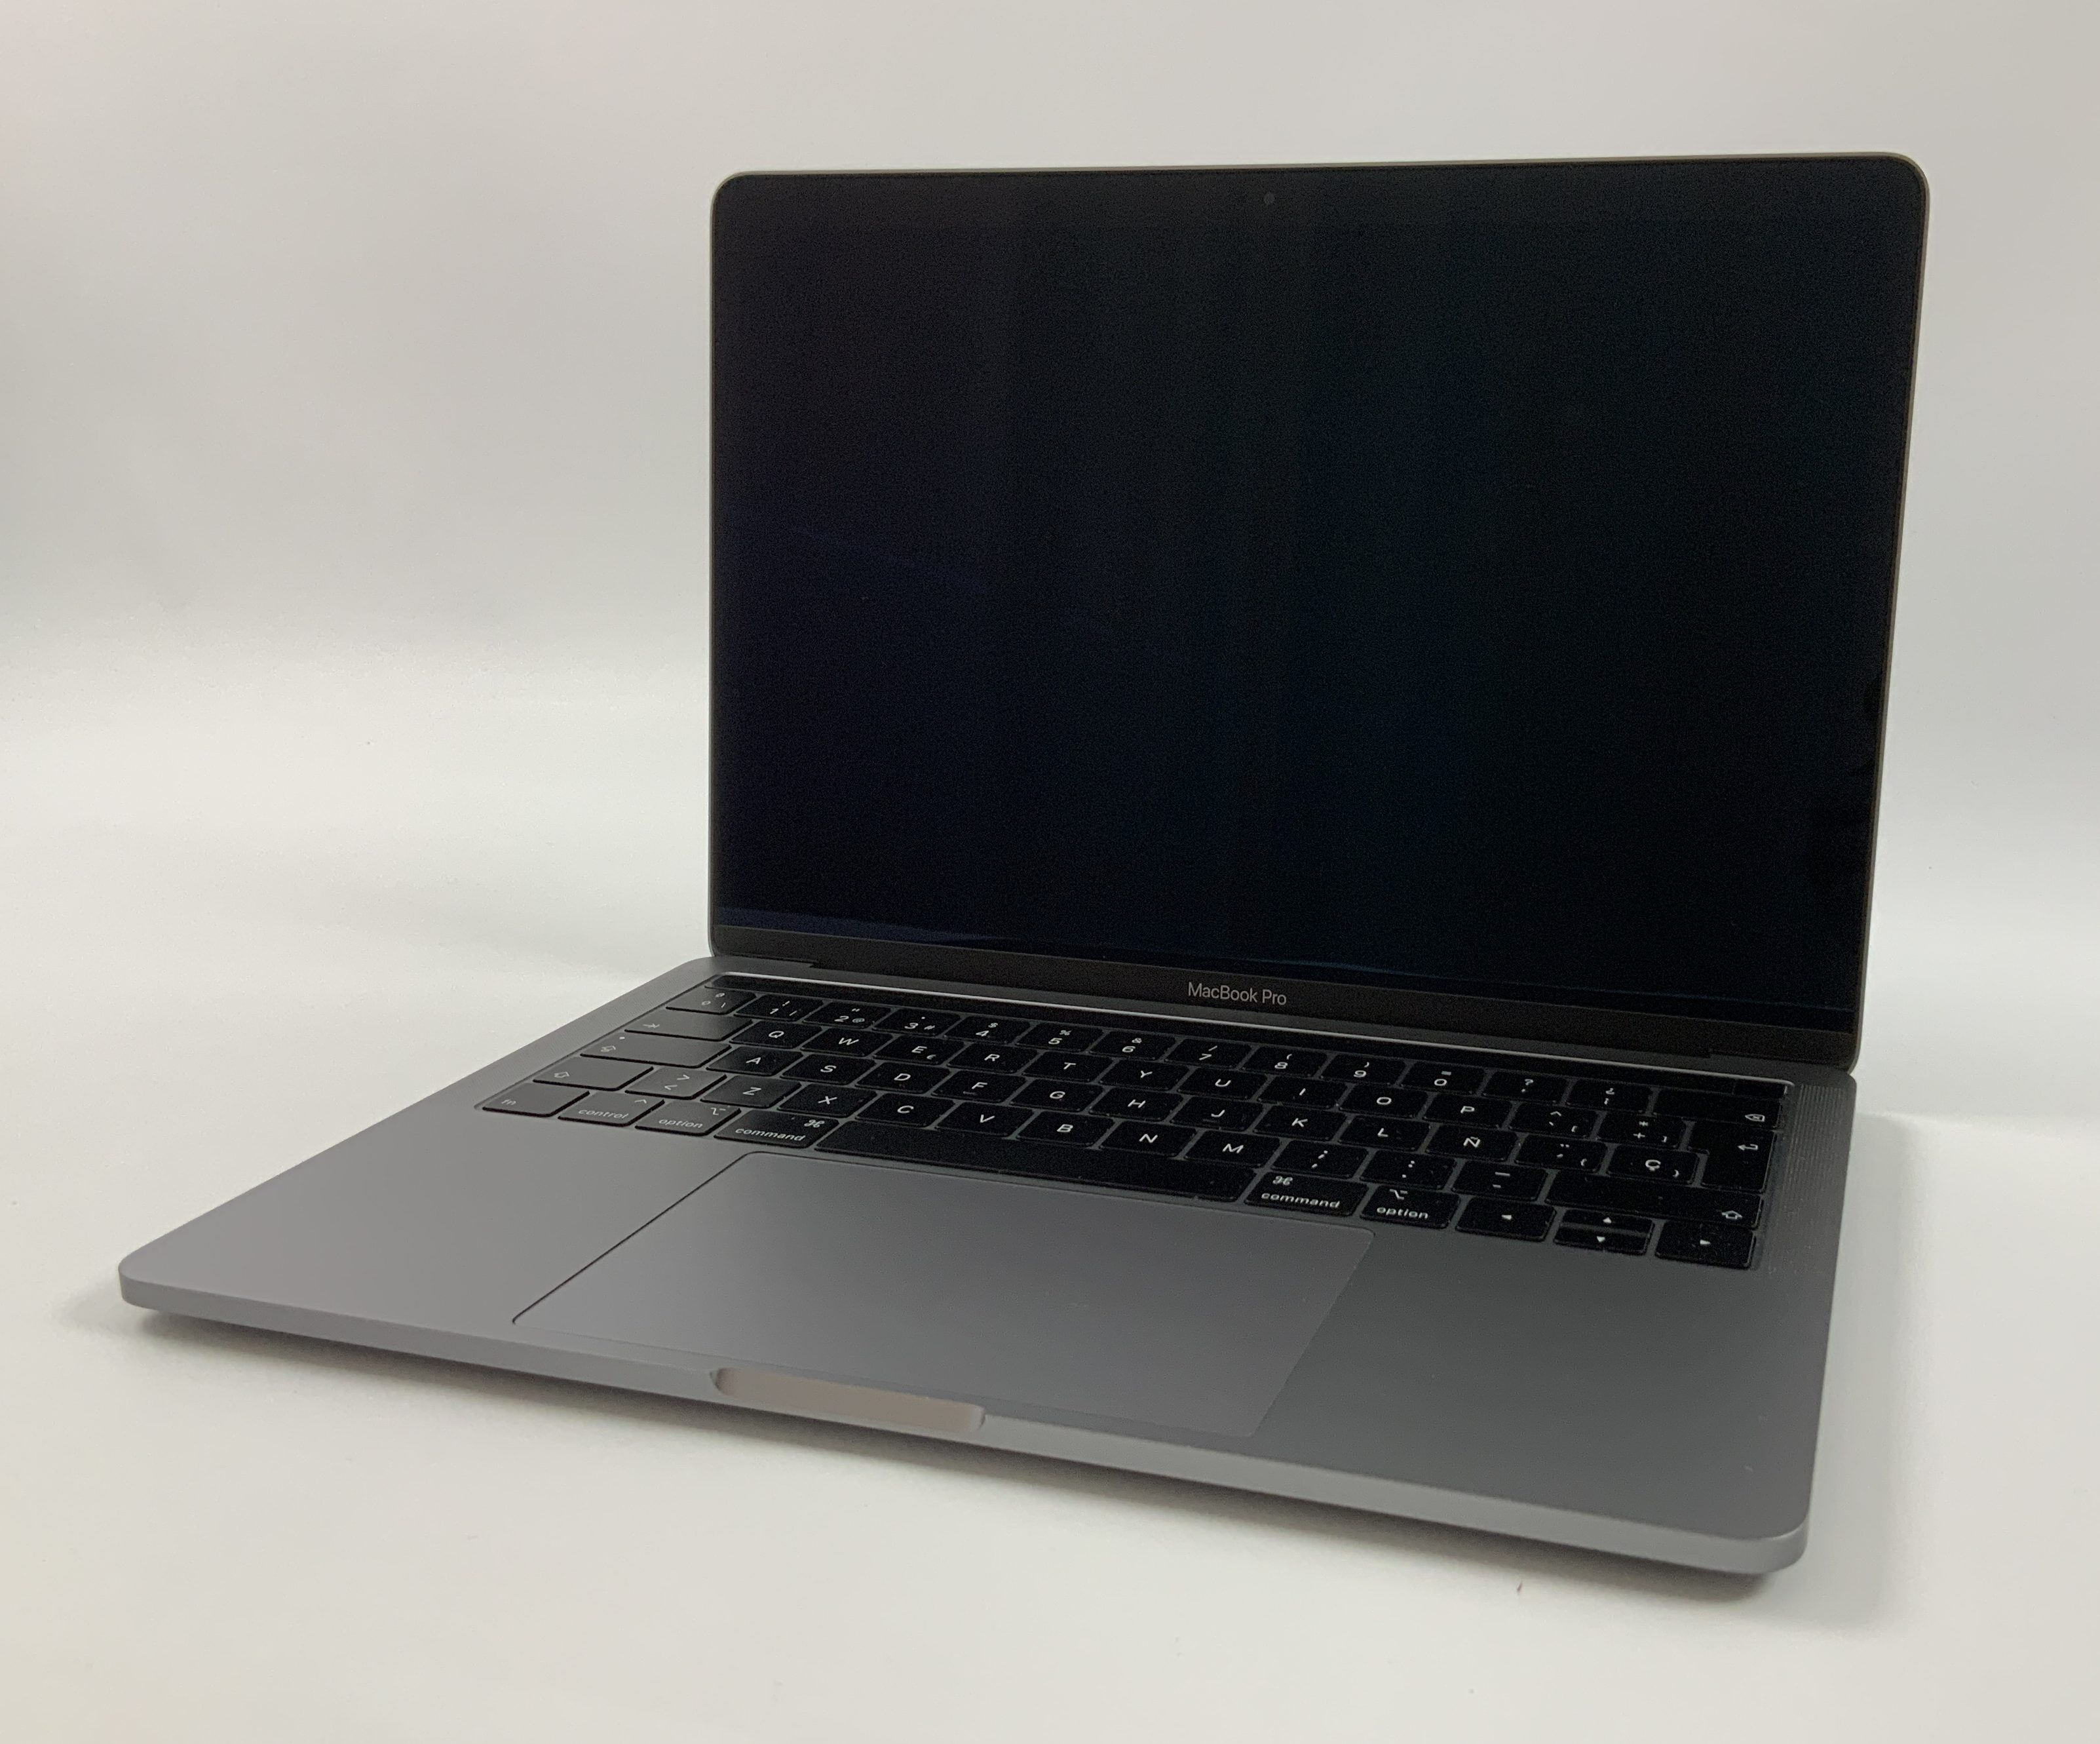 "MacBook Pro 13"" 4TBT Mid 2019 (Intel Quad-Core i5 2.4 GHz 8 GB RAM 256 GB SSD), Space Gray, Intel Quad-Core i5 2.4 GHz, 8 GB RAM, 256 GB SSD, obraz 1"